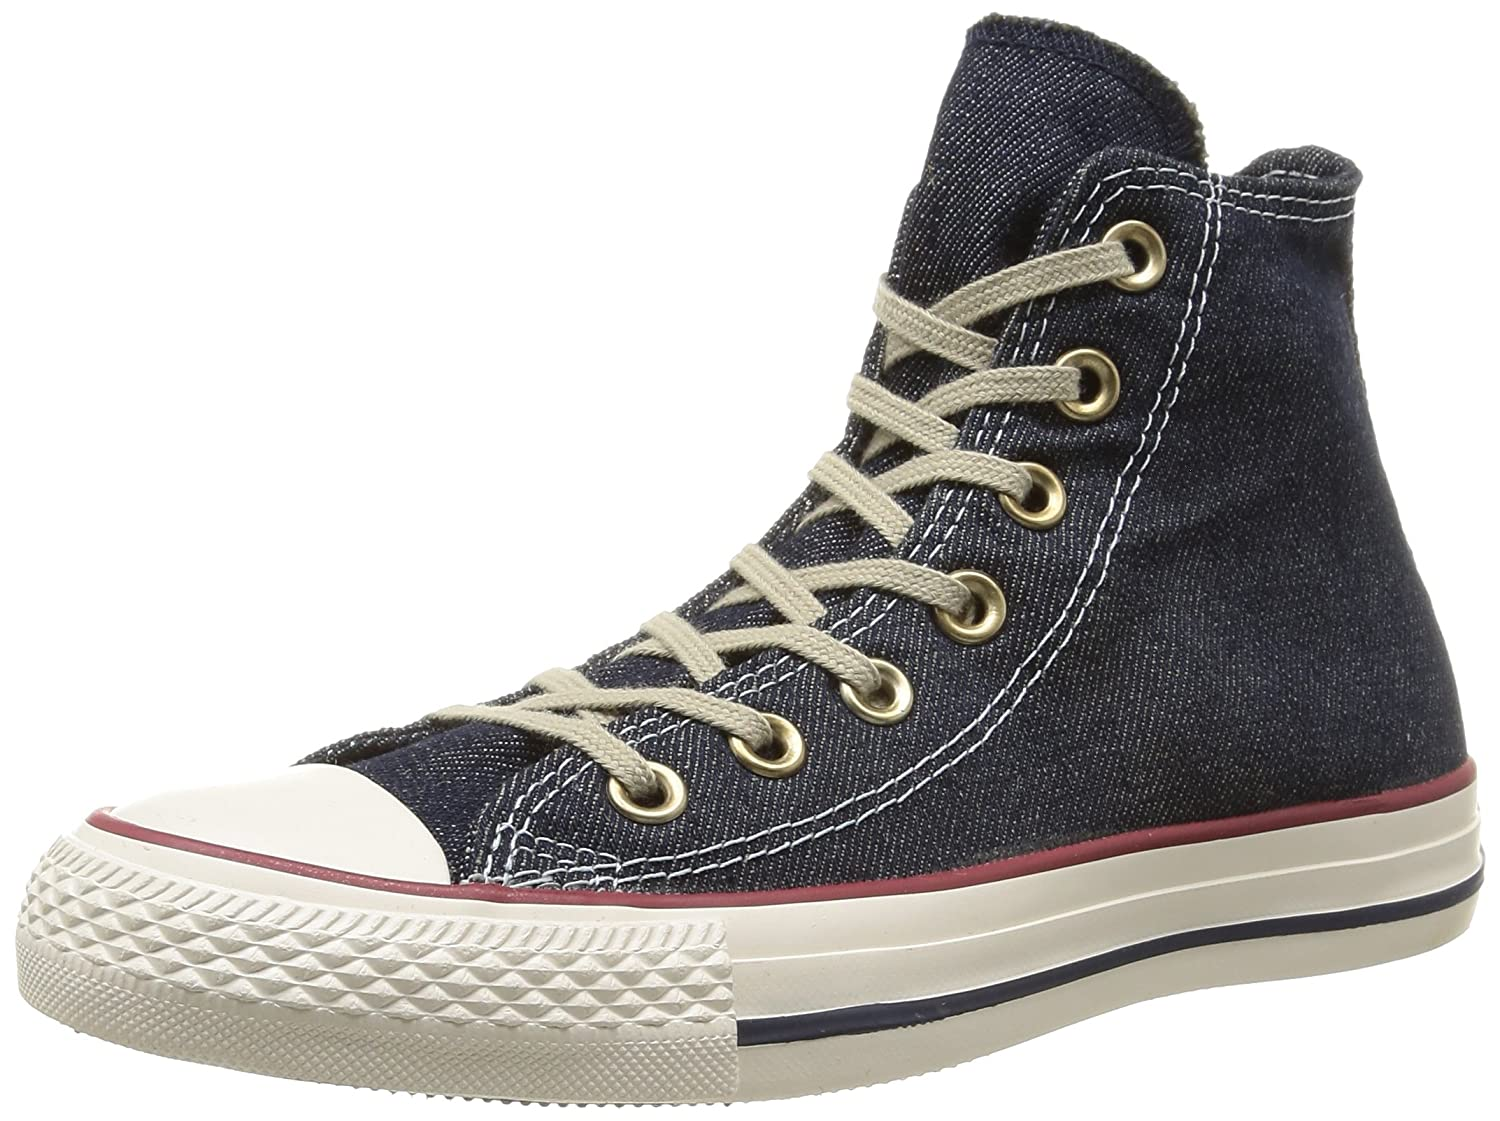 Converse mixte mode Ctas adulte Core Hi, Baskets mode mixte adulte 8092057 - fast-weightloss-diet.space